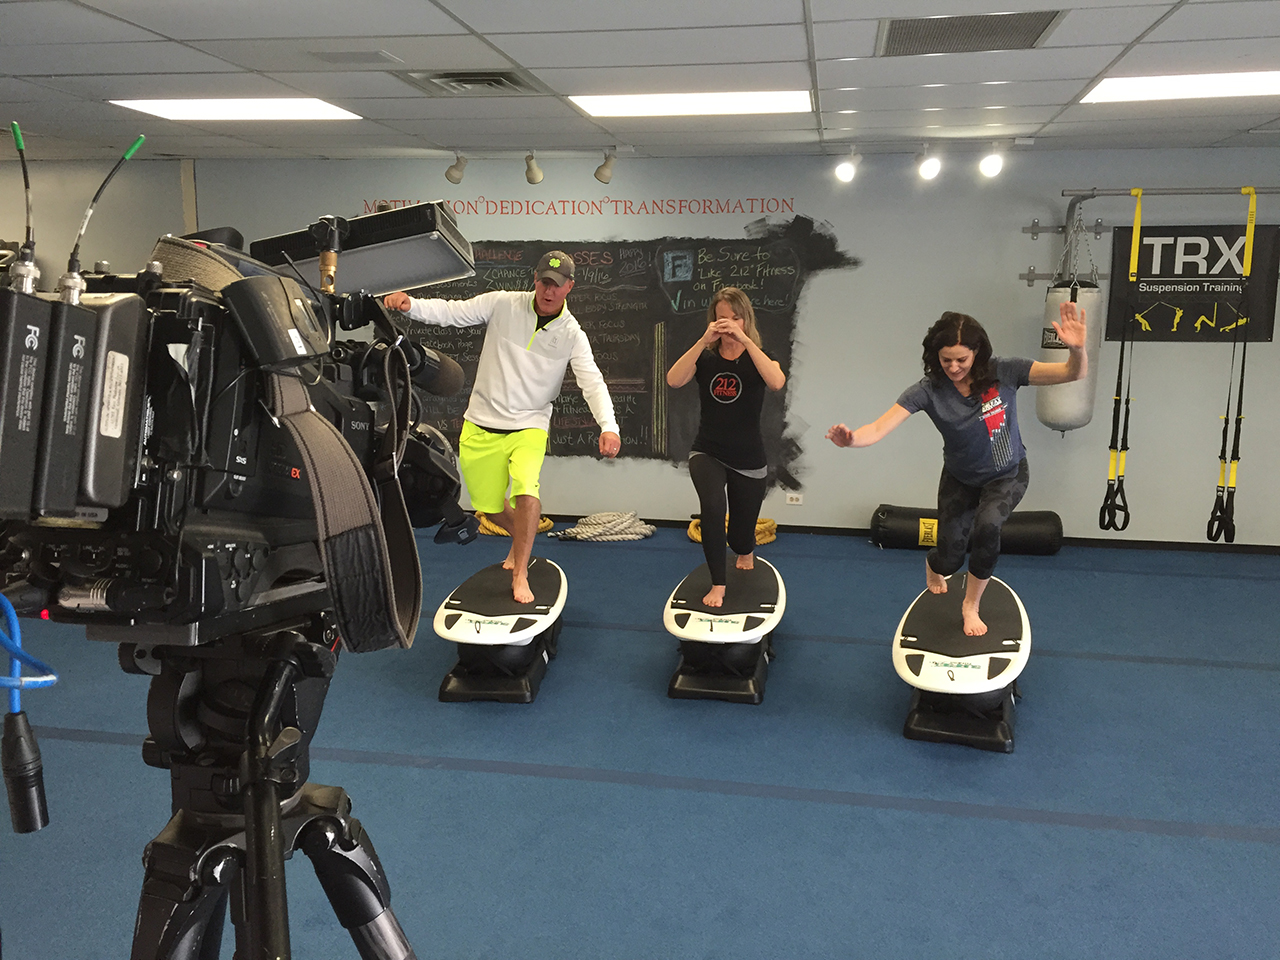 LAA-212-Degree-Fitness-Littleton-1280x960.jpg